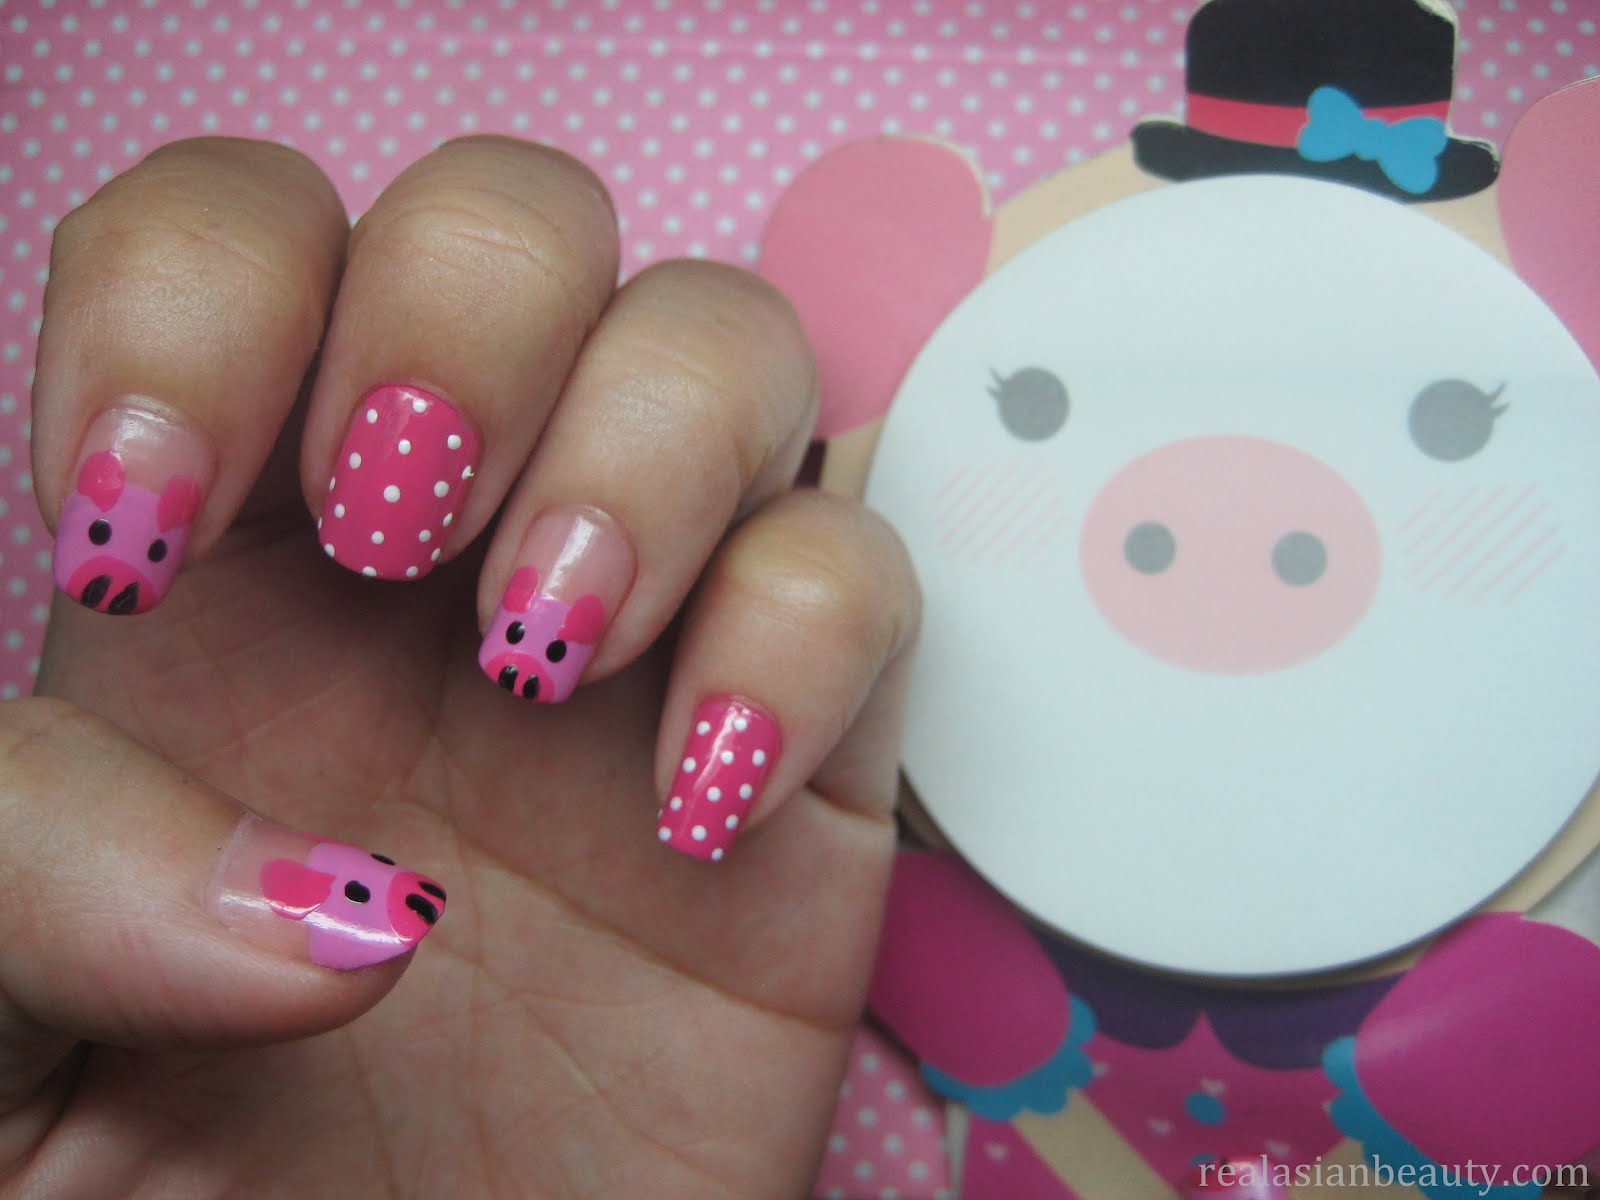 Cute Pig Nail Art Designs : Real asian beauty cute little pigs nail art